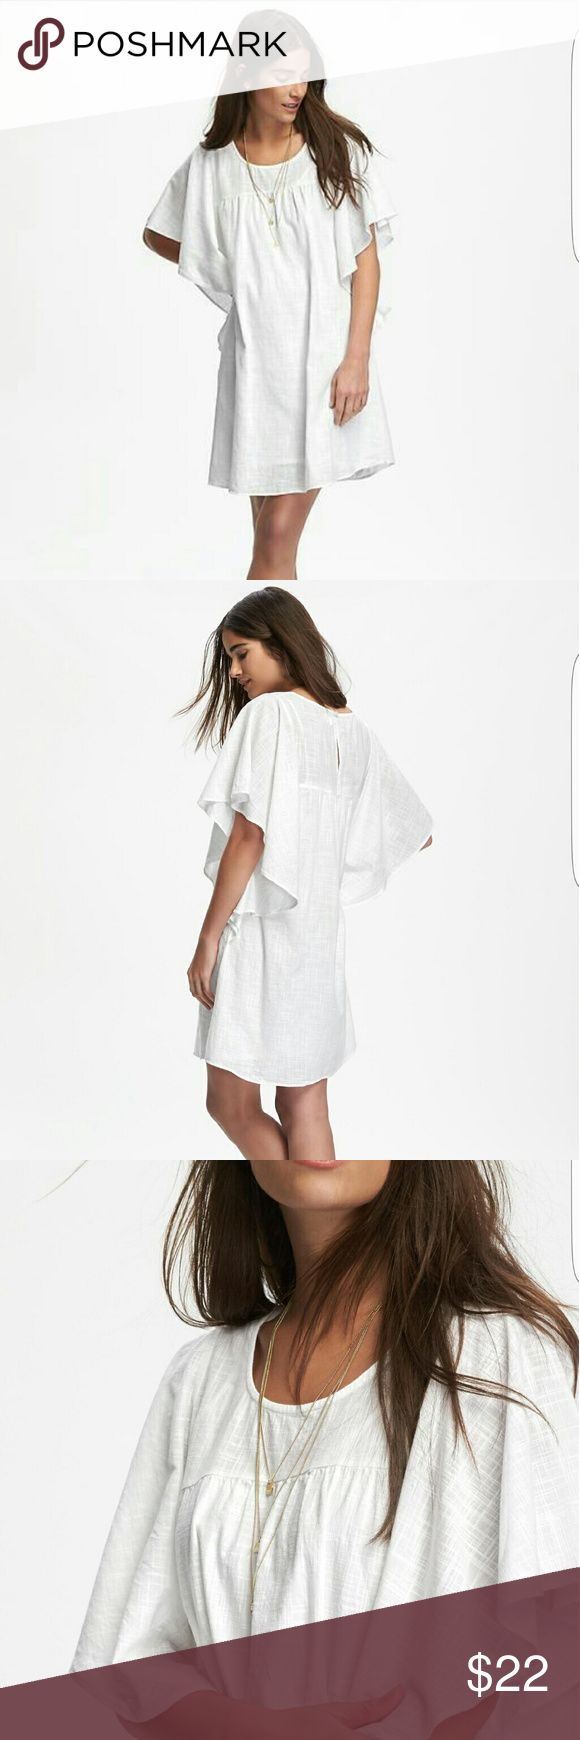 Old Navy Flutter Sleeve White Dress NWT New with Tags Perfect for summer Old Navy white sundress. Size medium. Old Navy Dresses Mini